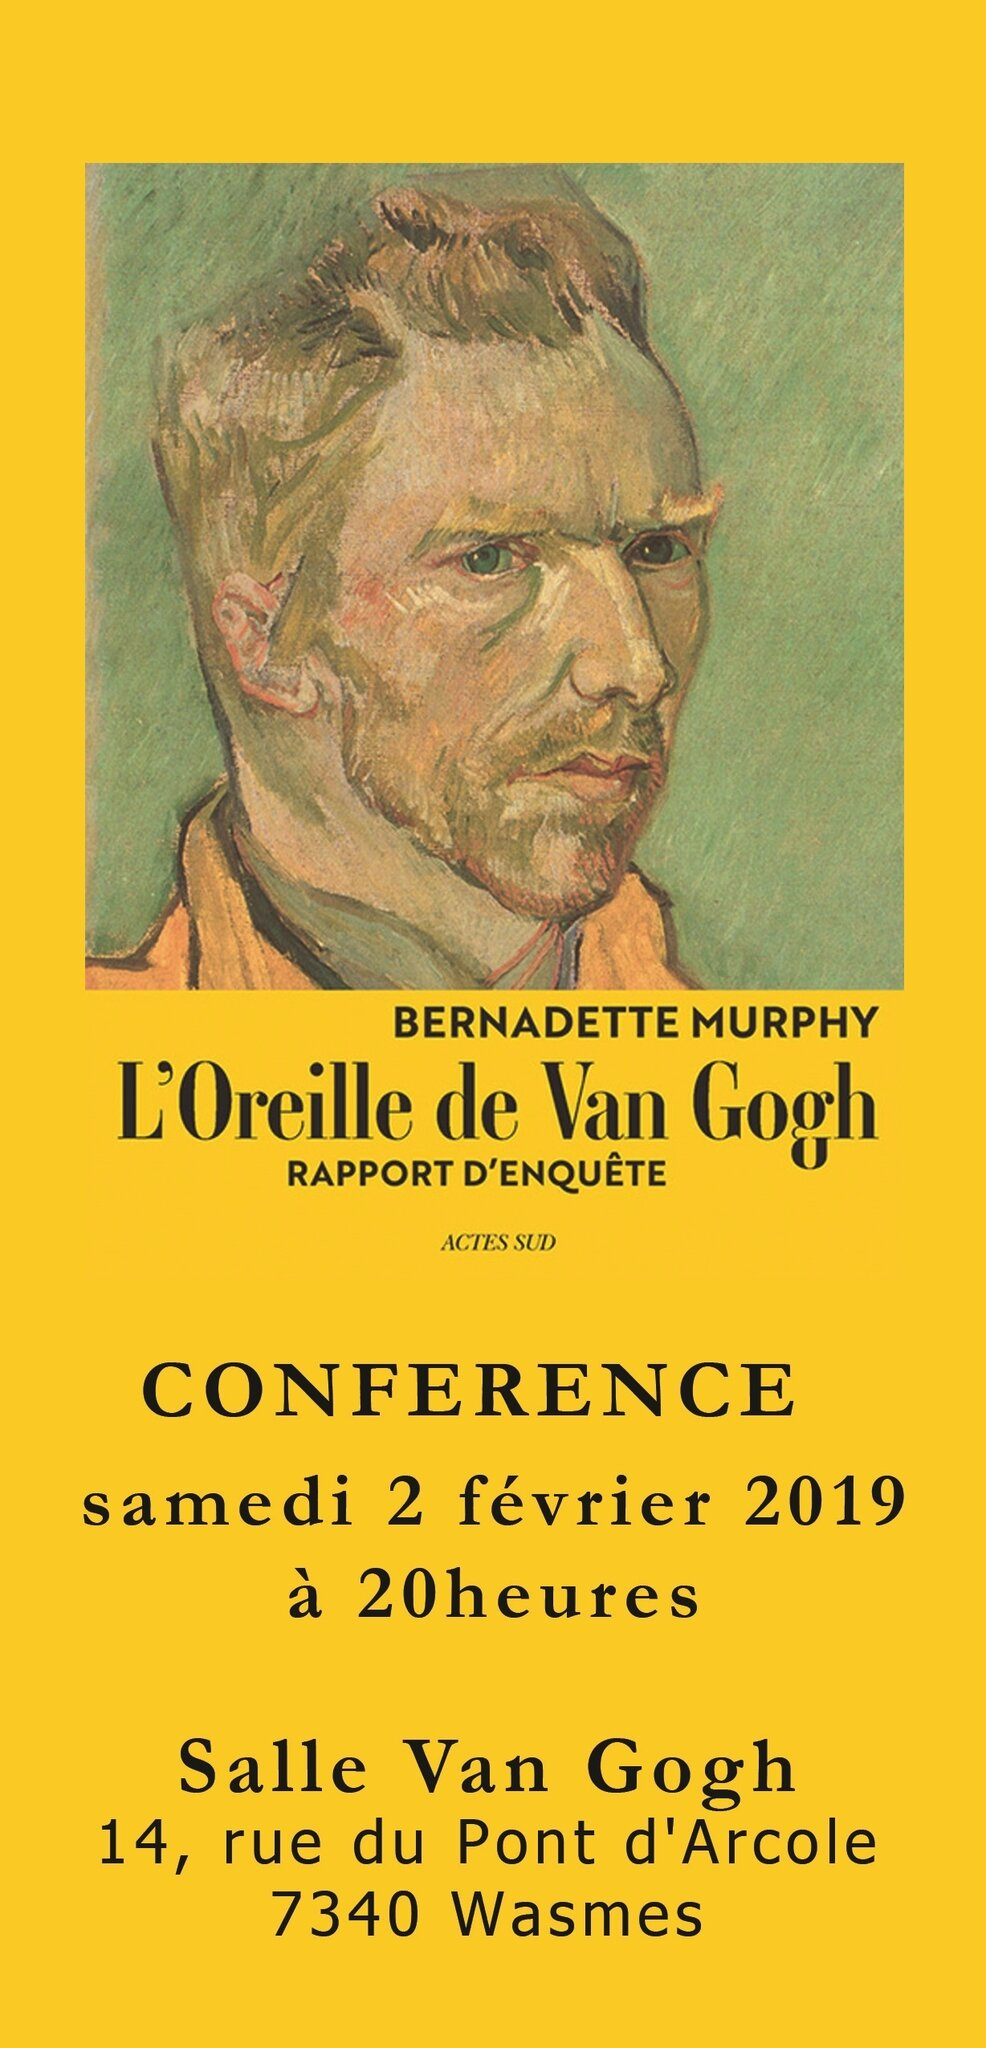 Bernadette Murphy : The true story of Vann Gogh's ear / Van Gogh, l'énigme de l'oreille coupée